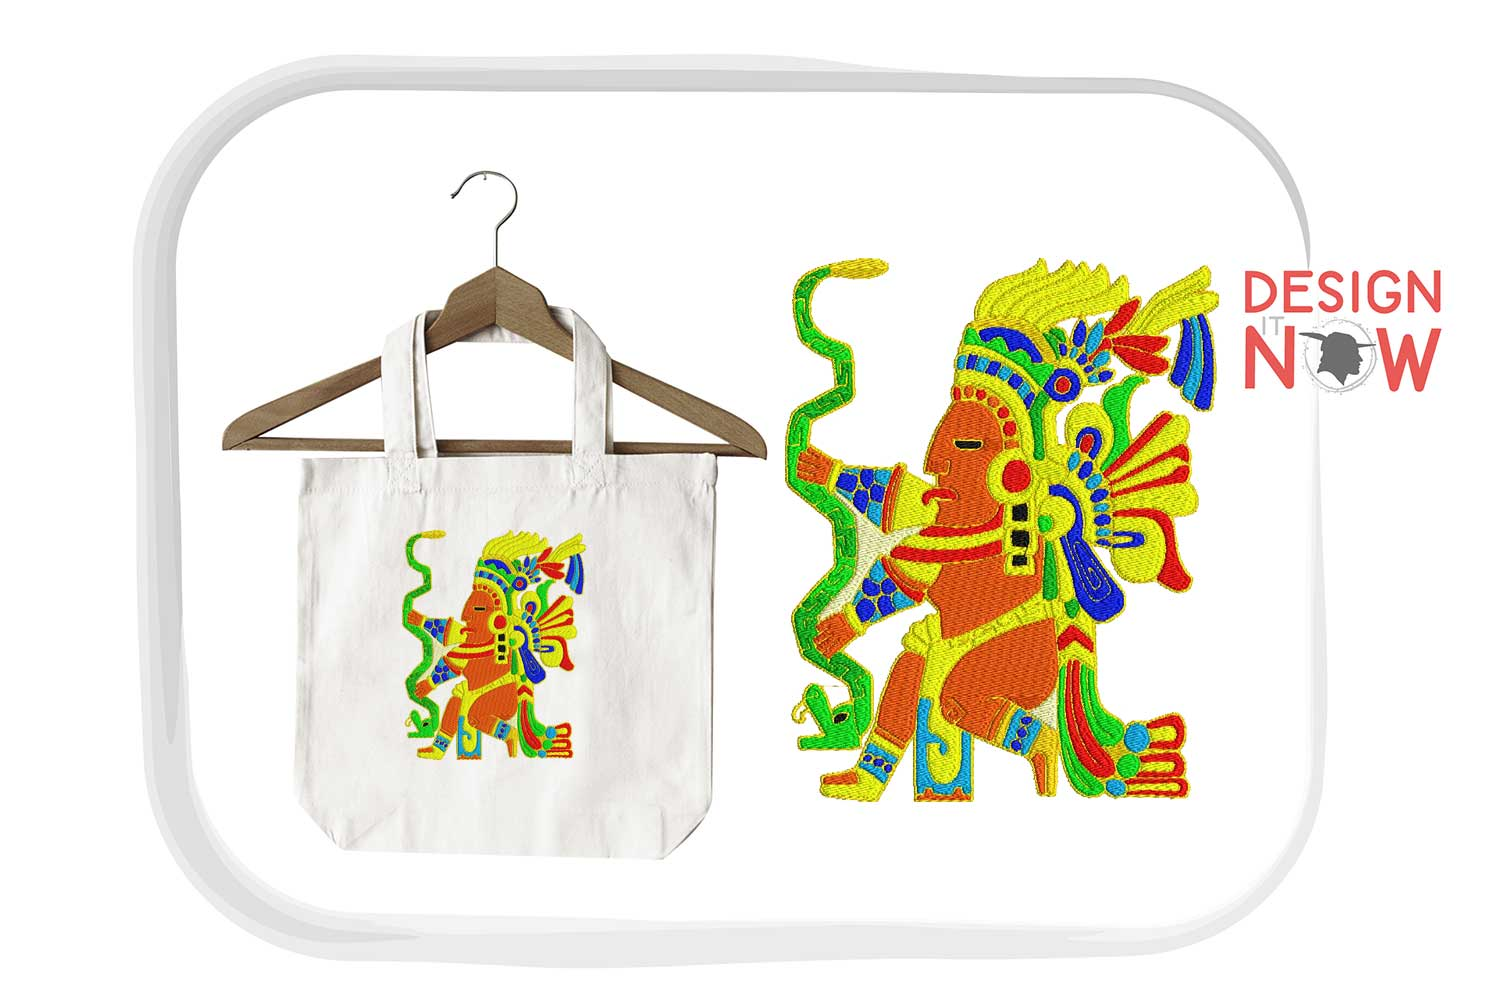 Inca Culture Embroidery Design, Inca Mythology Embroidery example image 5